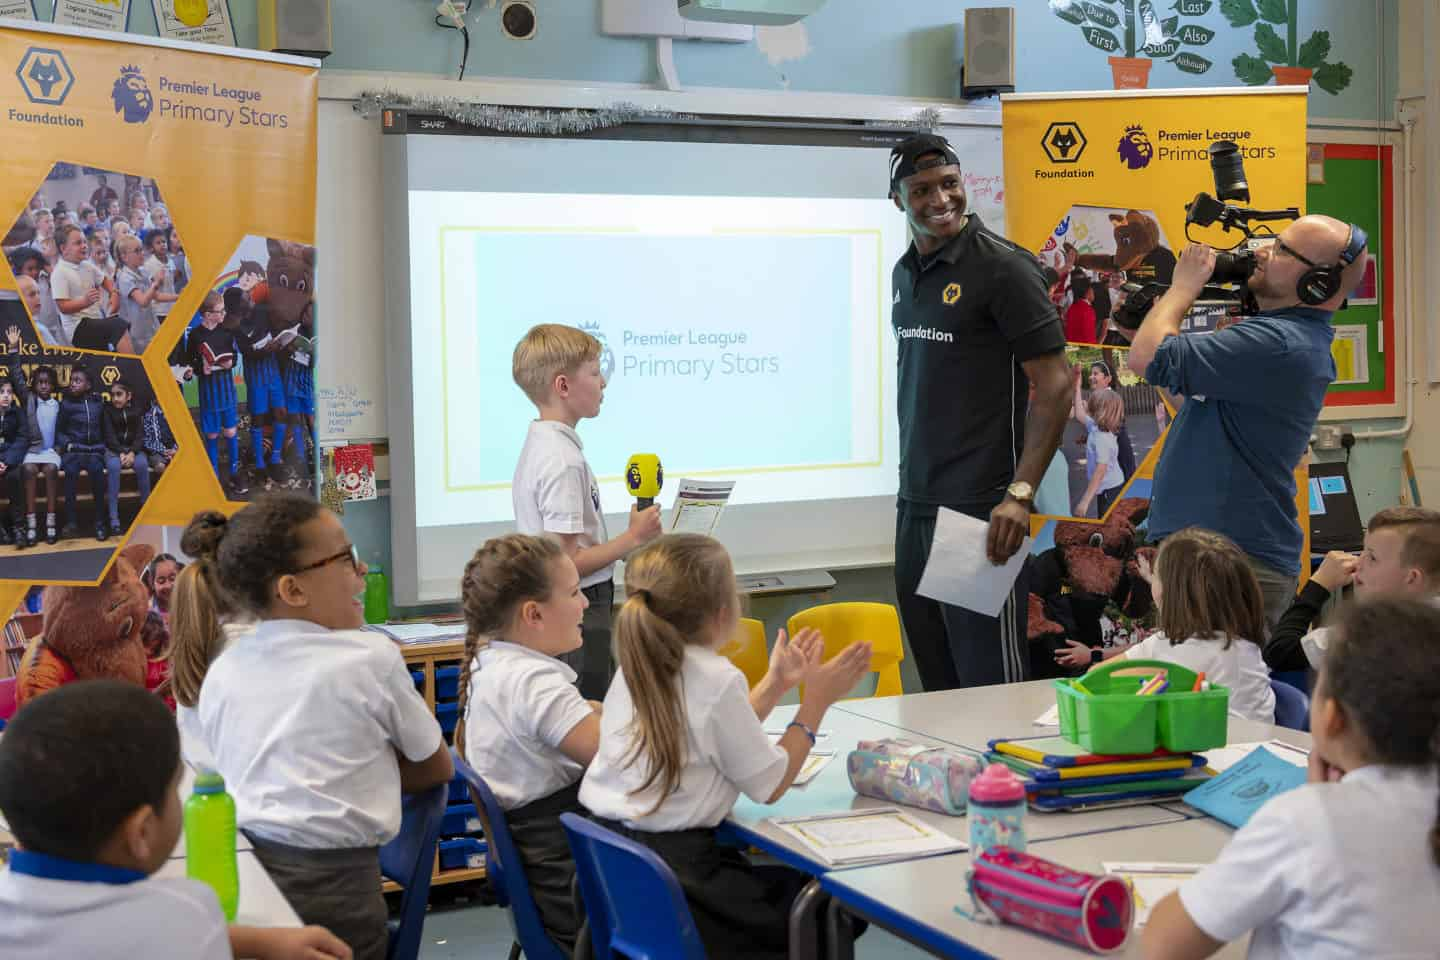 Premier League Writing Stars opportunities for children